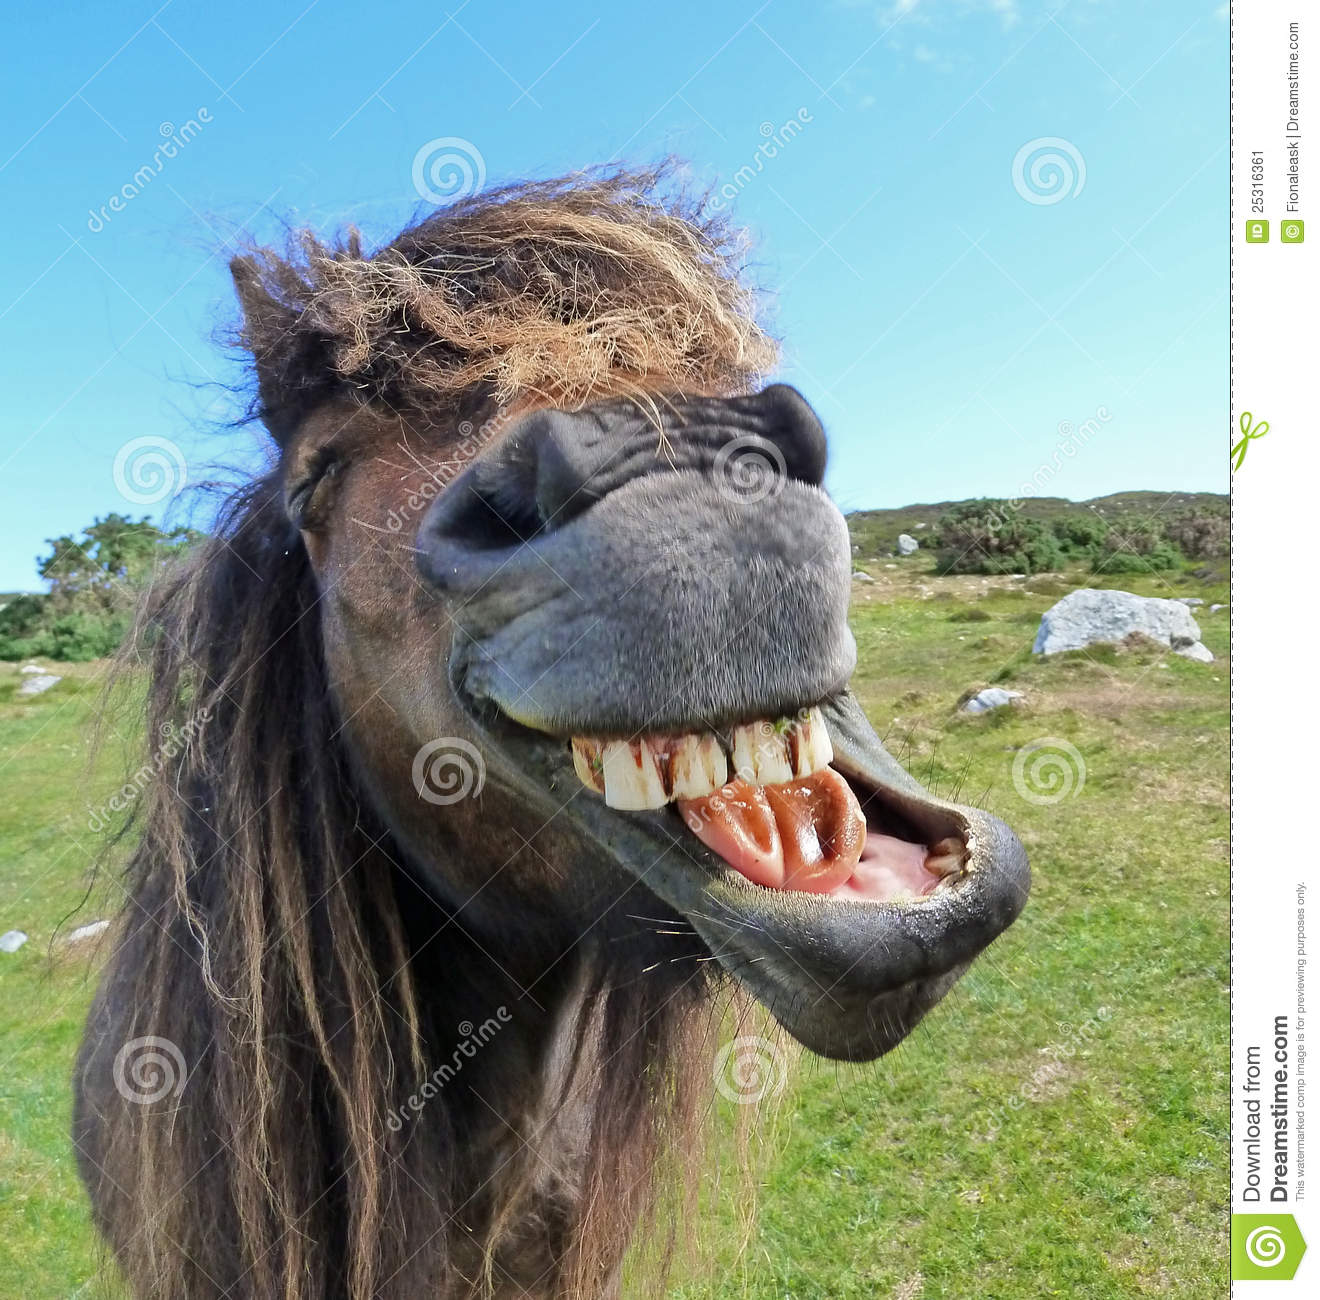 Cheval riant image stock. Image du sourire, cheval, humeur ... - photo#12